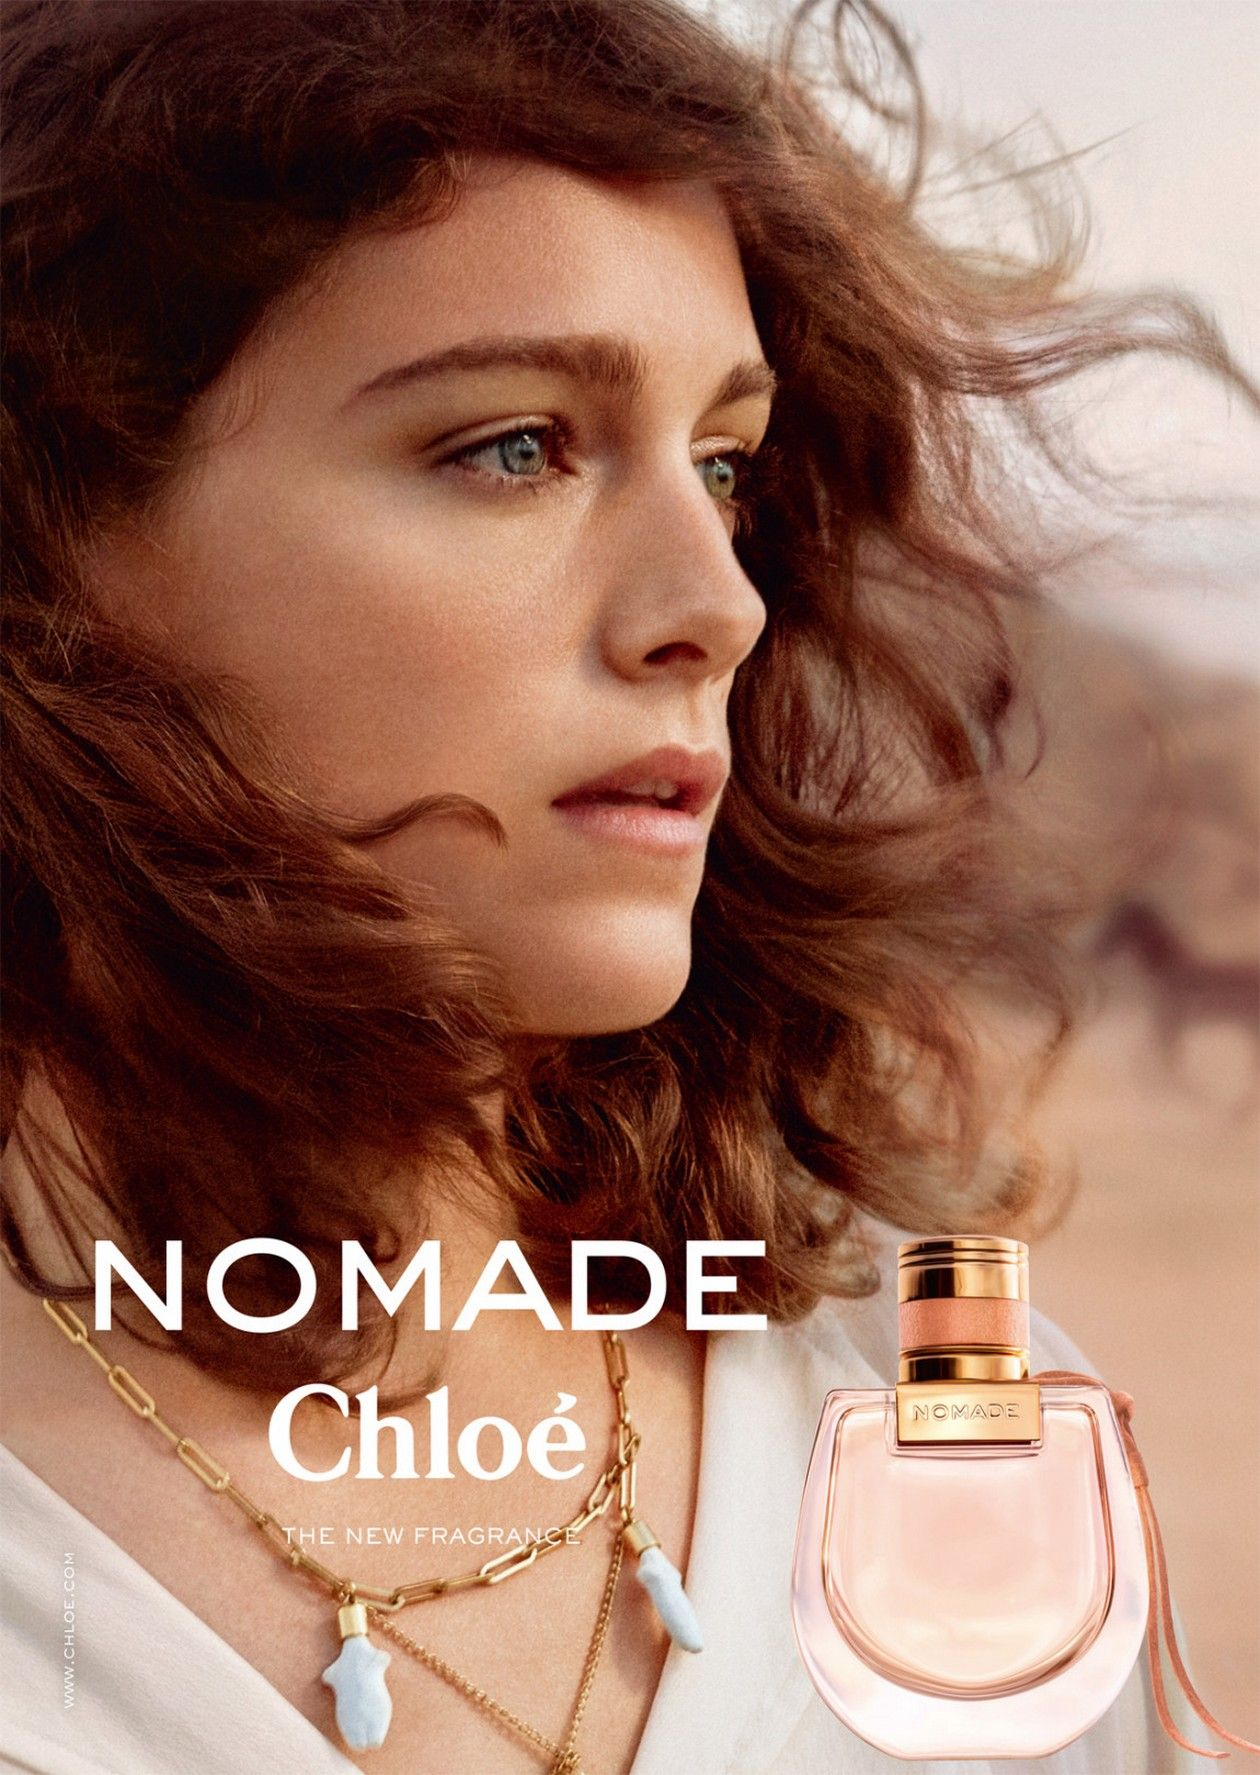 Ariane Labed | Nomade | Chloé - The New Fragrance